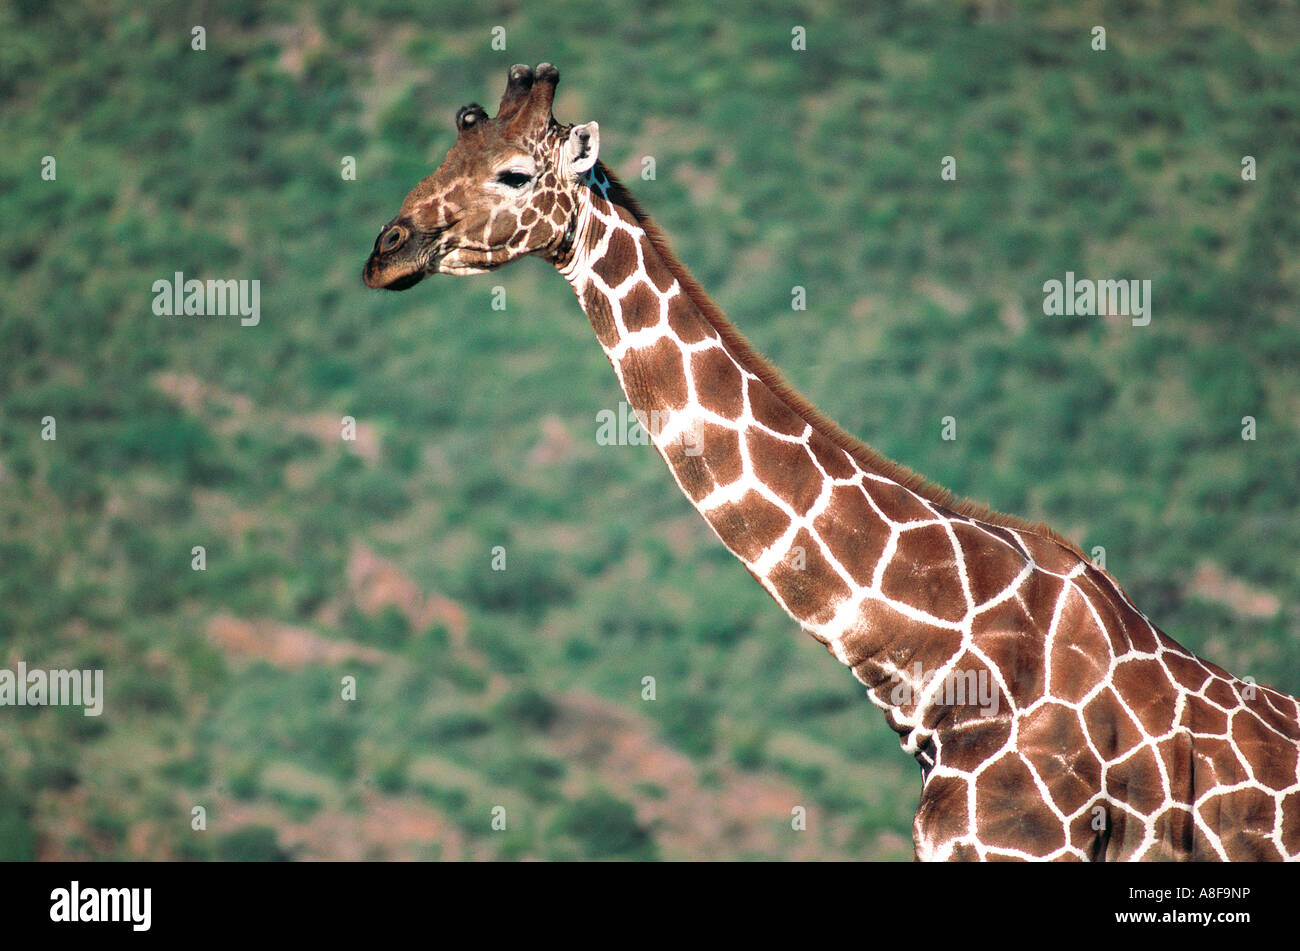 Reticulated Giraffe Samburu National Reserve Kenya - Stock Image